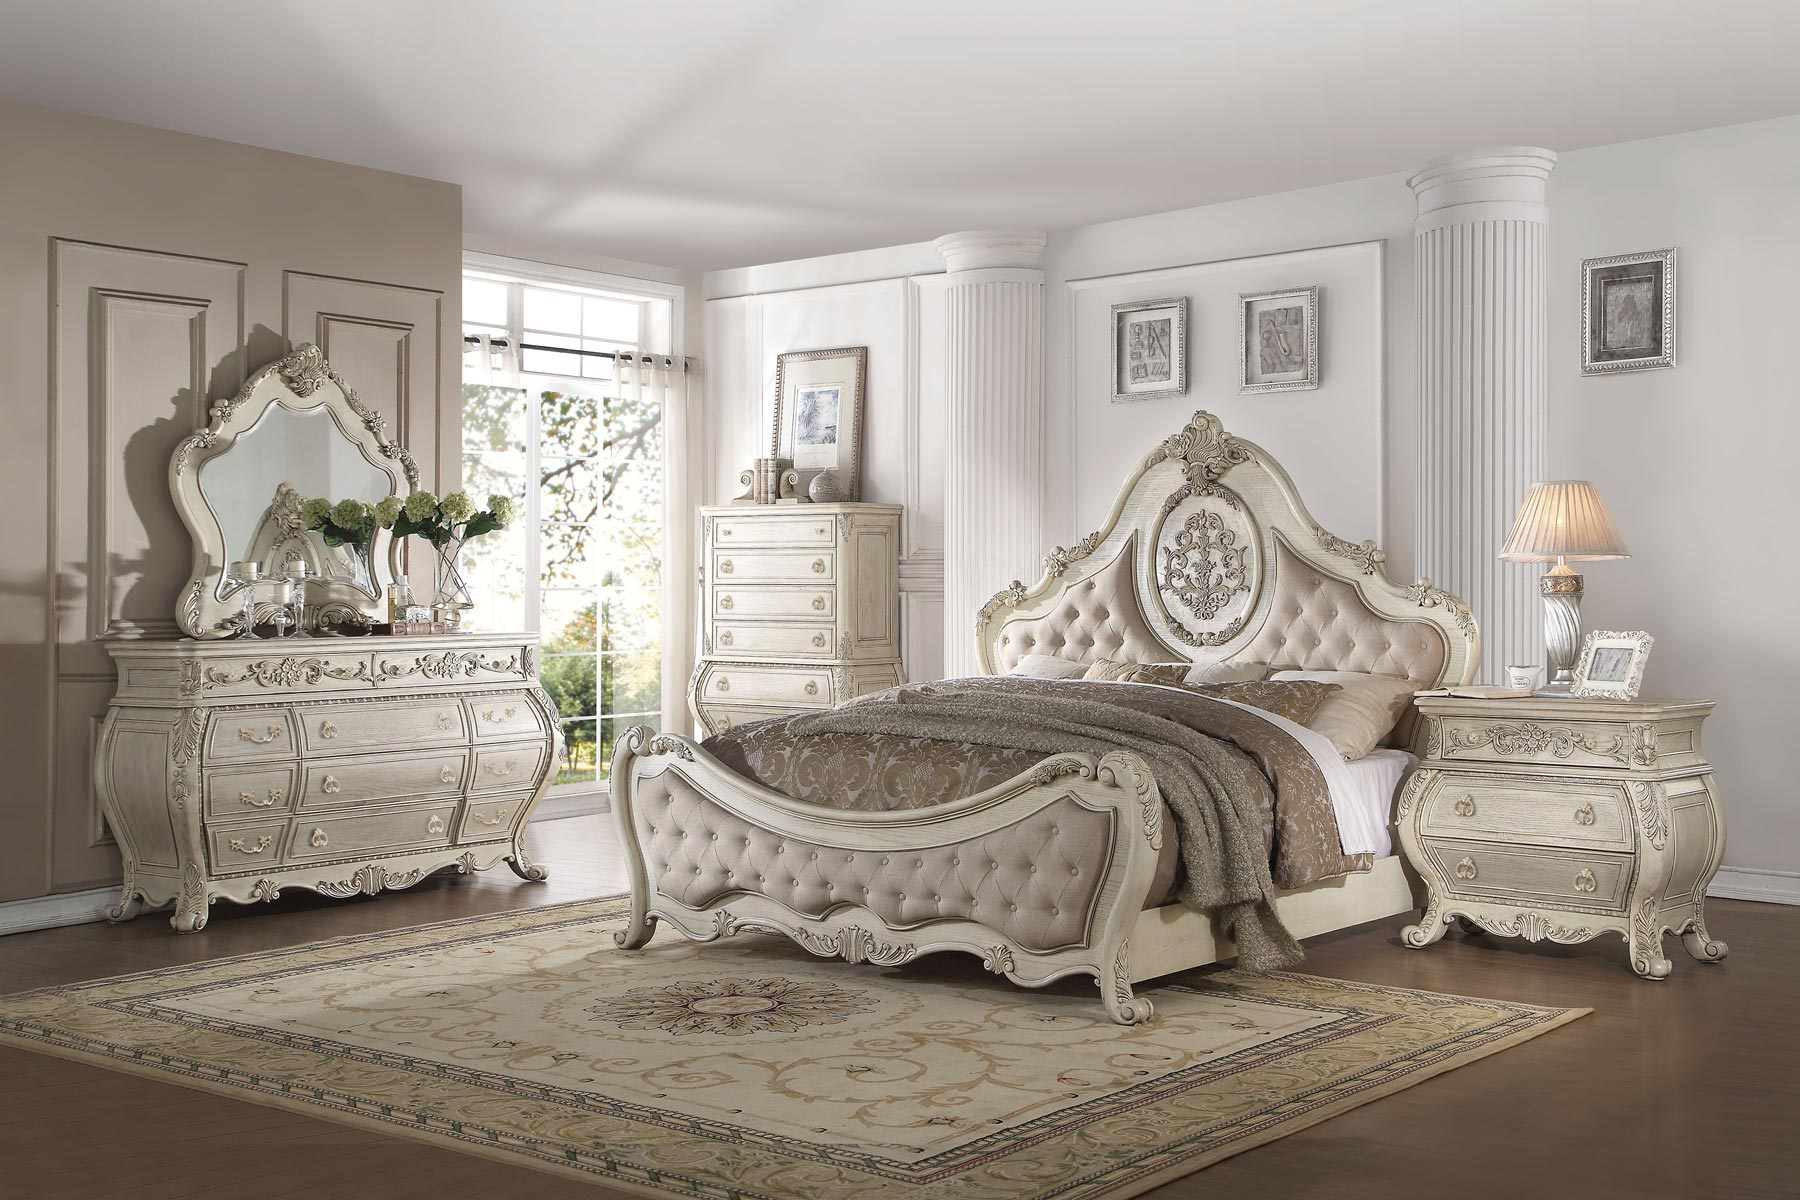 Sensational Ragenardus 6 Piece Bedroom Set Gonzalez Furniture Home Remodeling Inspirations Genioncuboardxyz